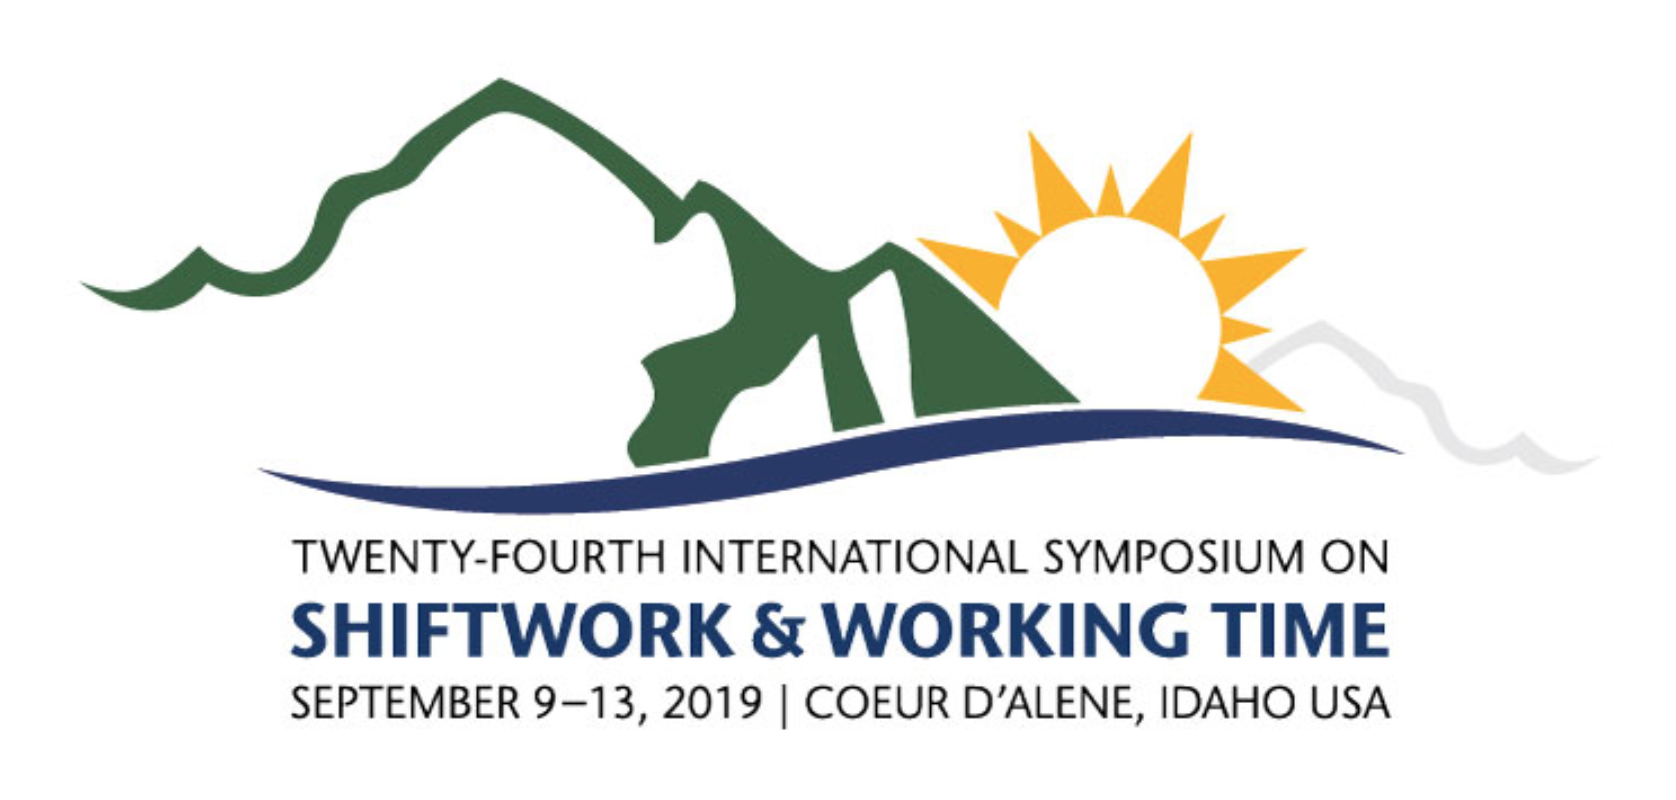 Twenty-Fourth International Symposium on Shiftwork & Working Time